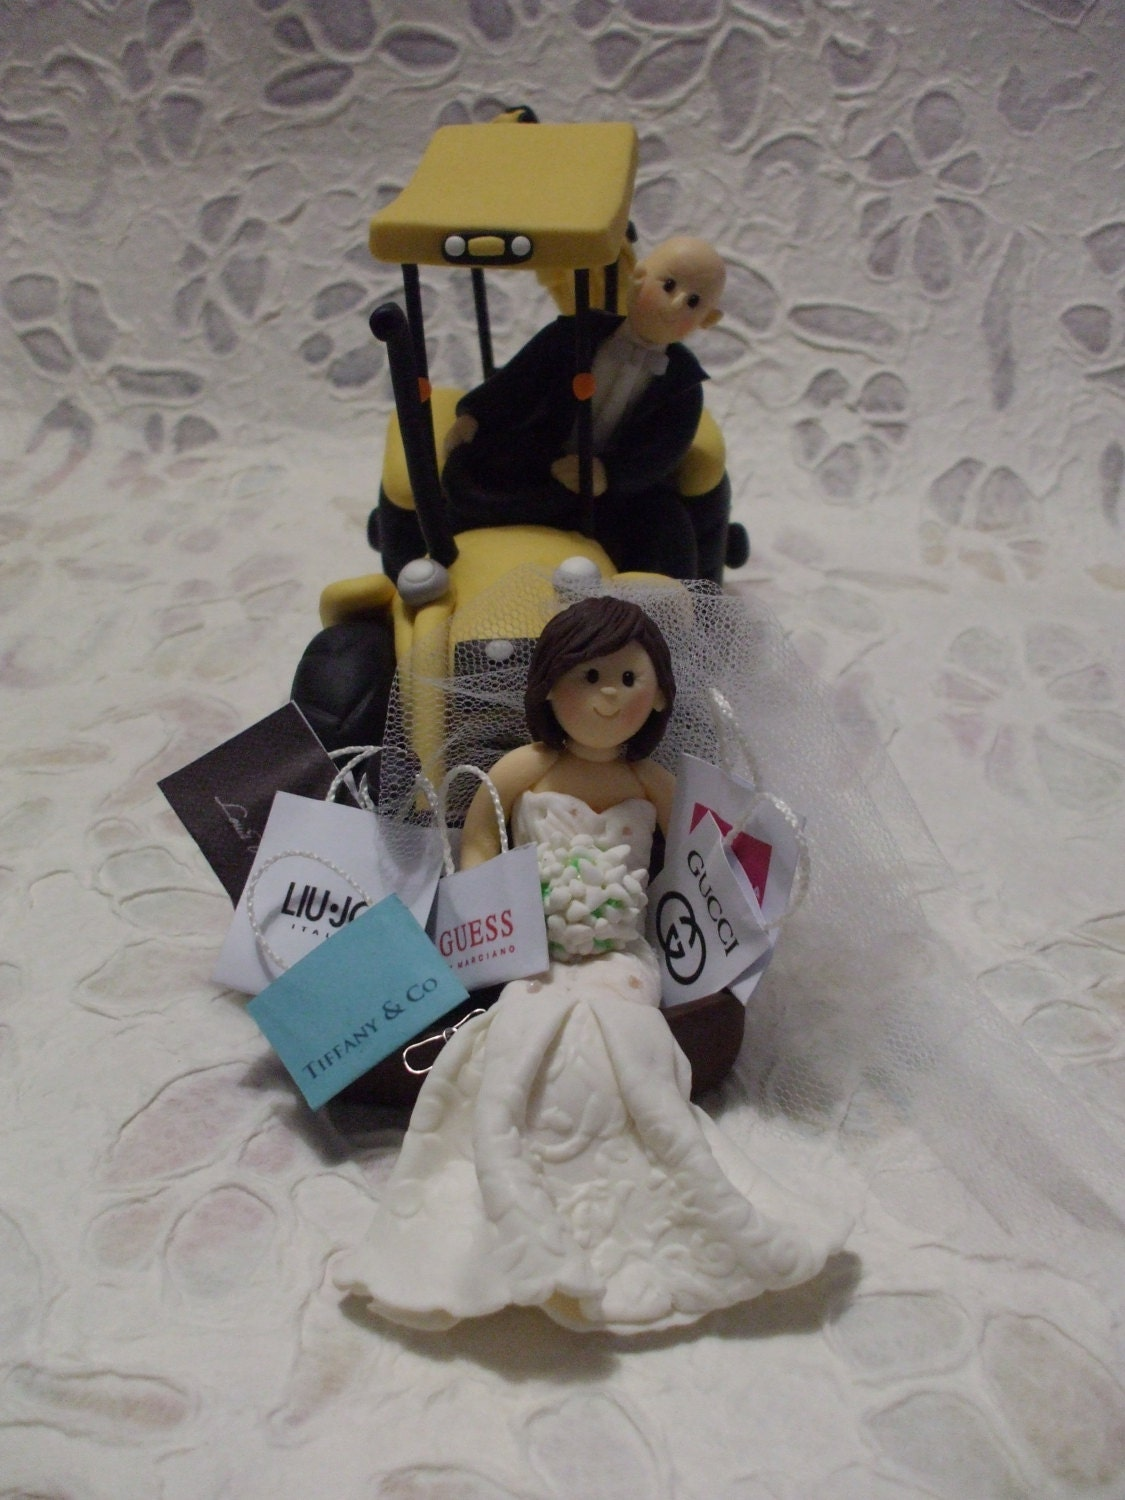 Customized bride and groom on excavator wedding cake topper